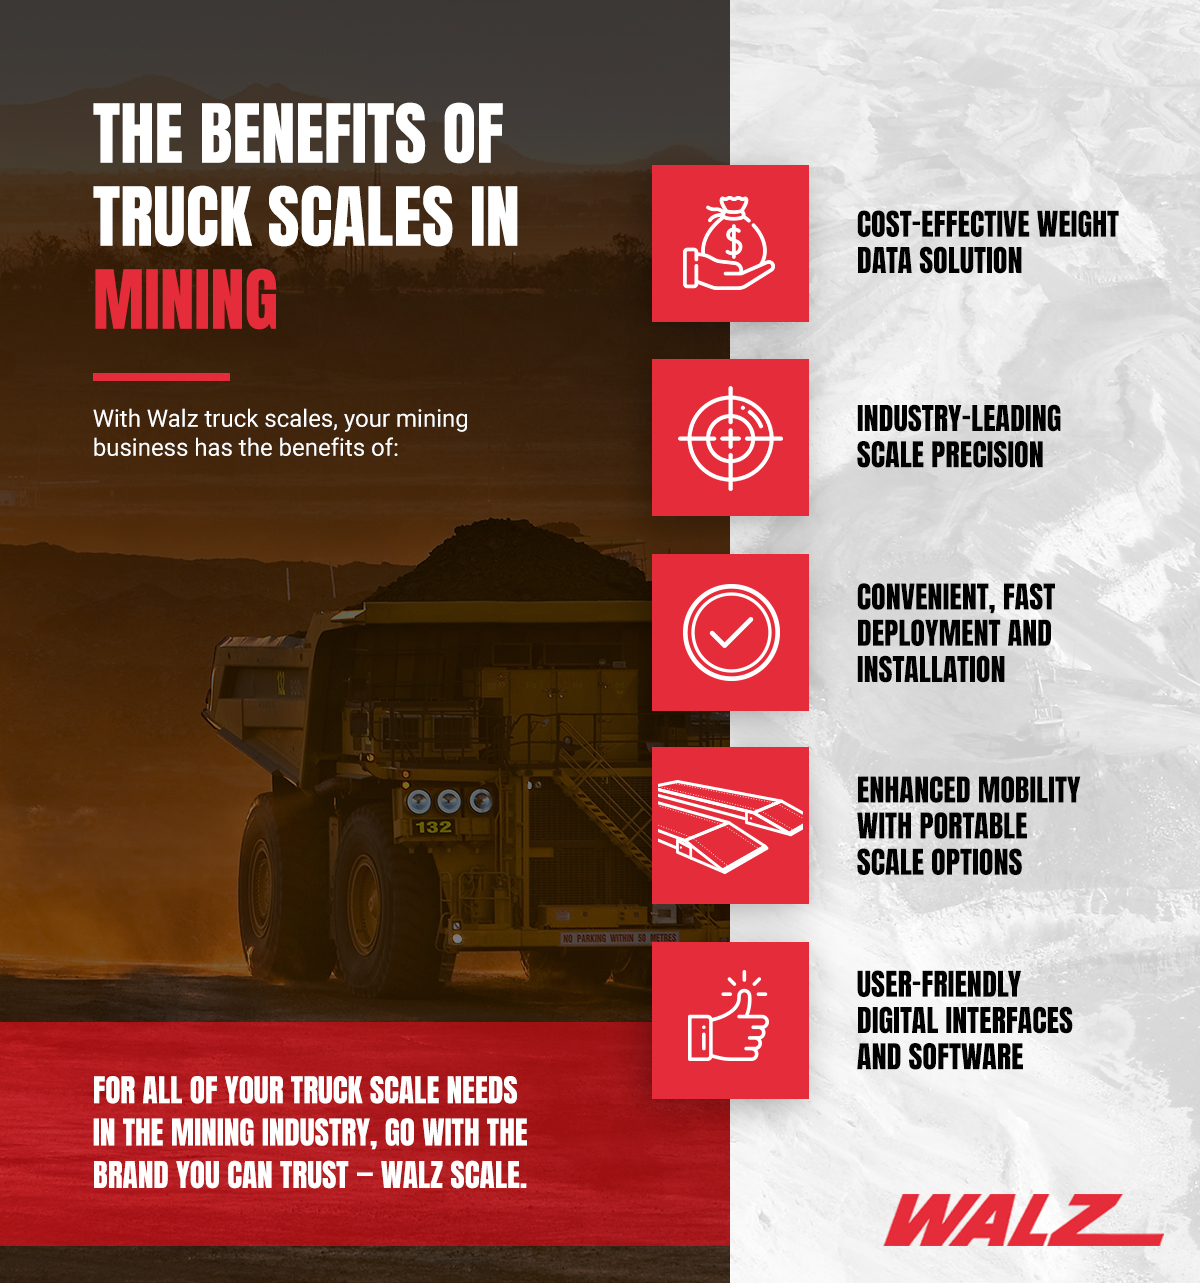 The Benefits of Truck Scales in Mining